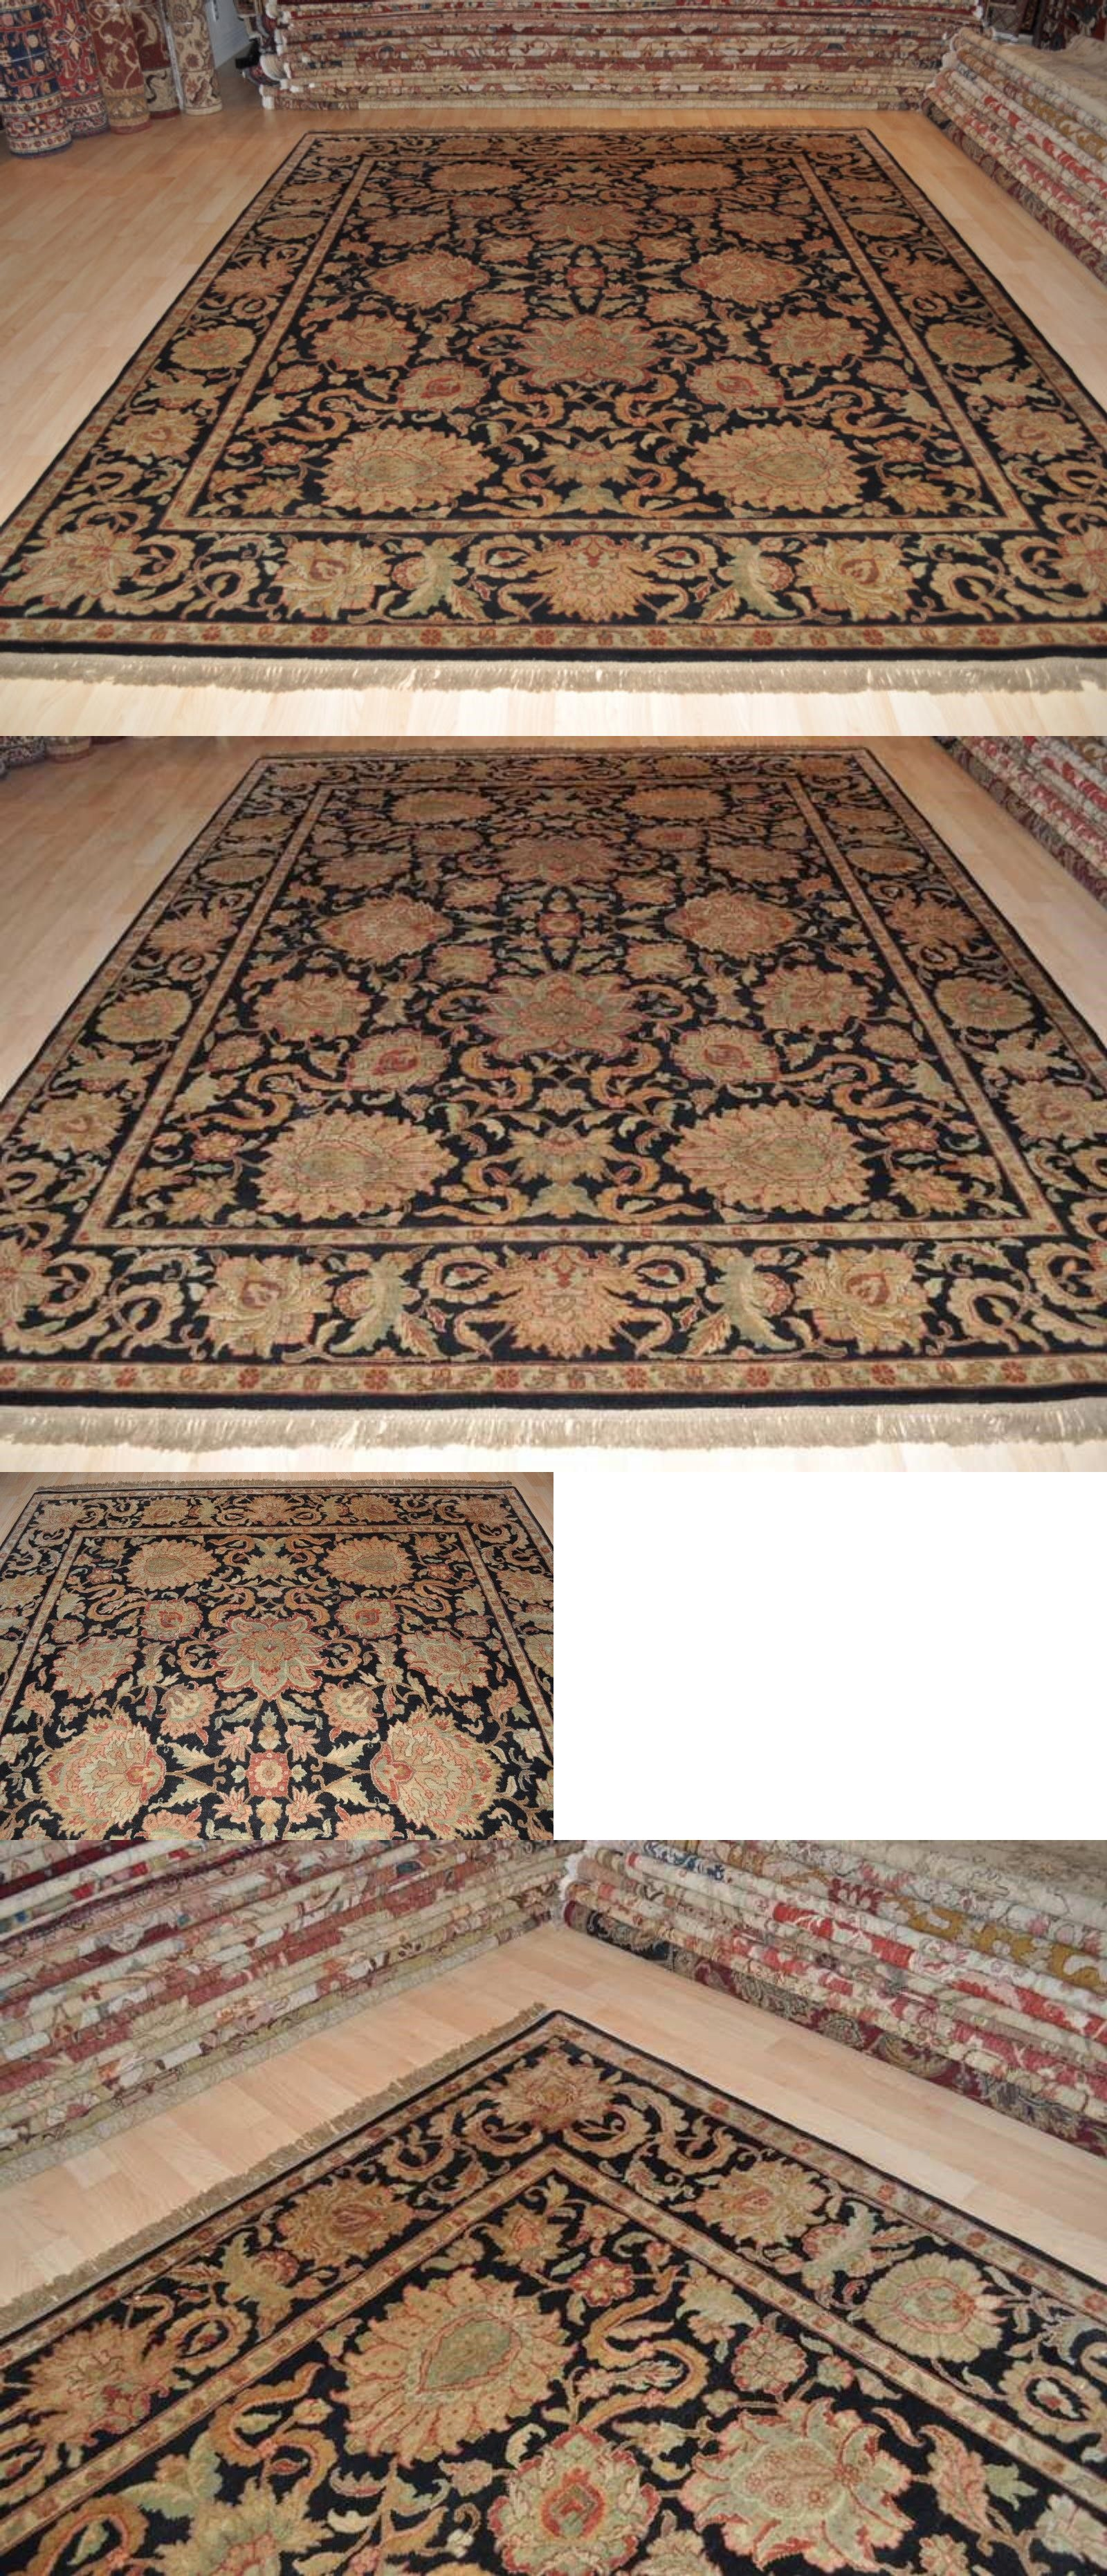 Rugs And Carpets 37978 8 X 10 Handmade Oriental Rug Persian Design Wool Fine Quality Wool Carpet Rug Bu Handmade Oriental Rugs Buying Carpet Rugs On Carpet